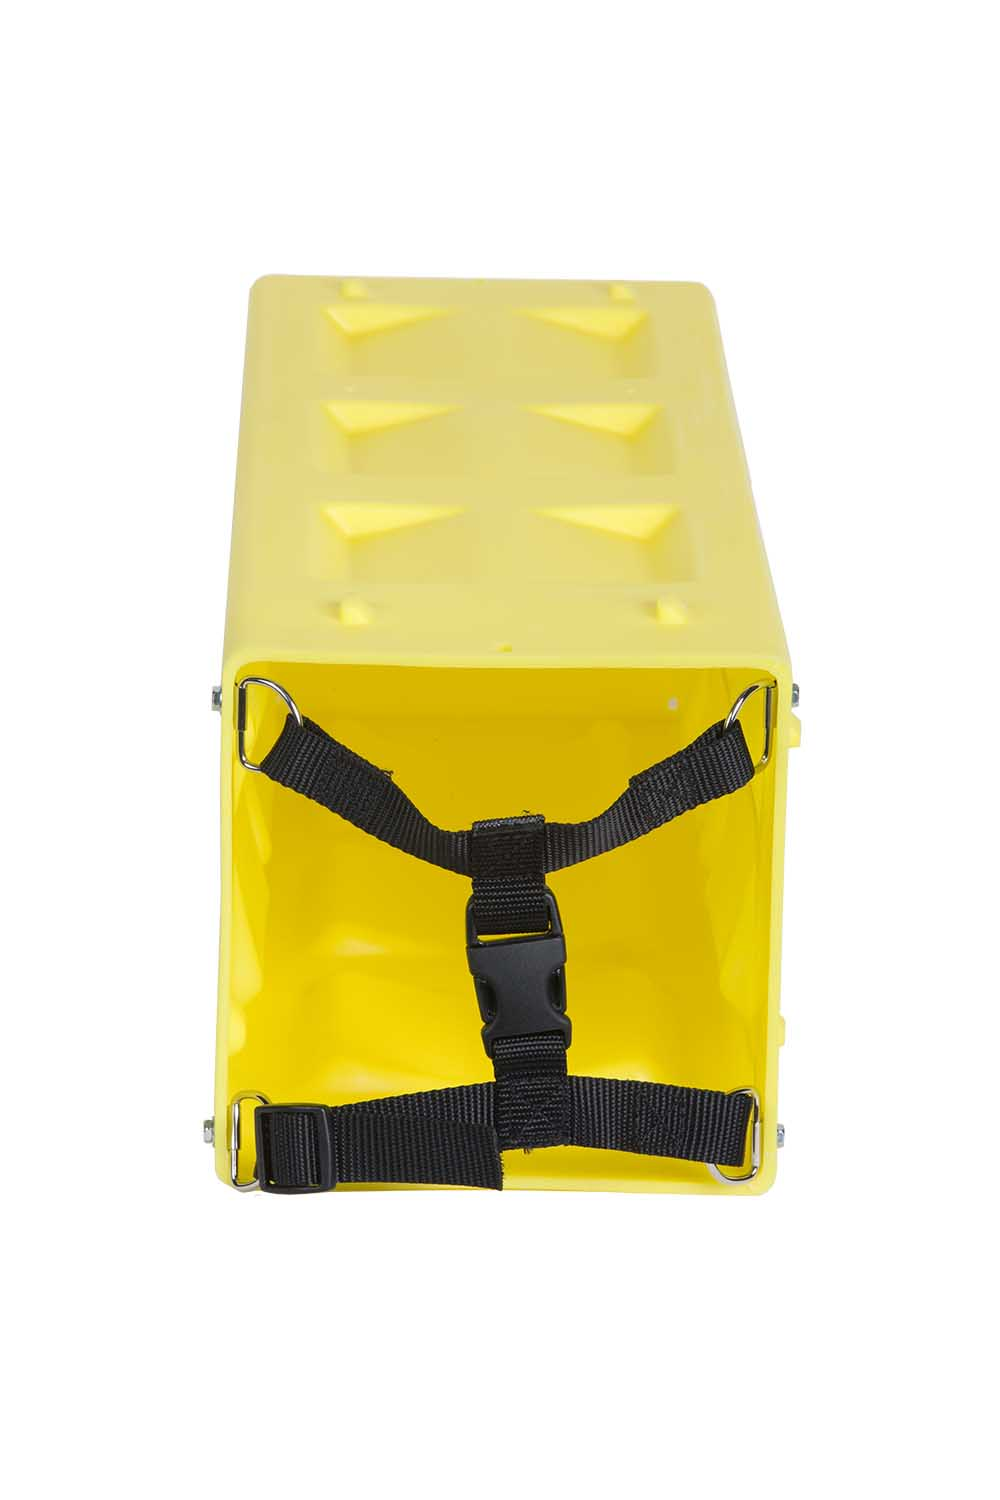 Plastic QUIC-STORAGE Rack – Yellow